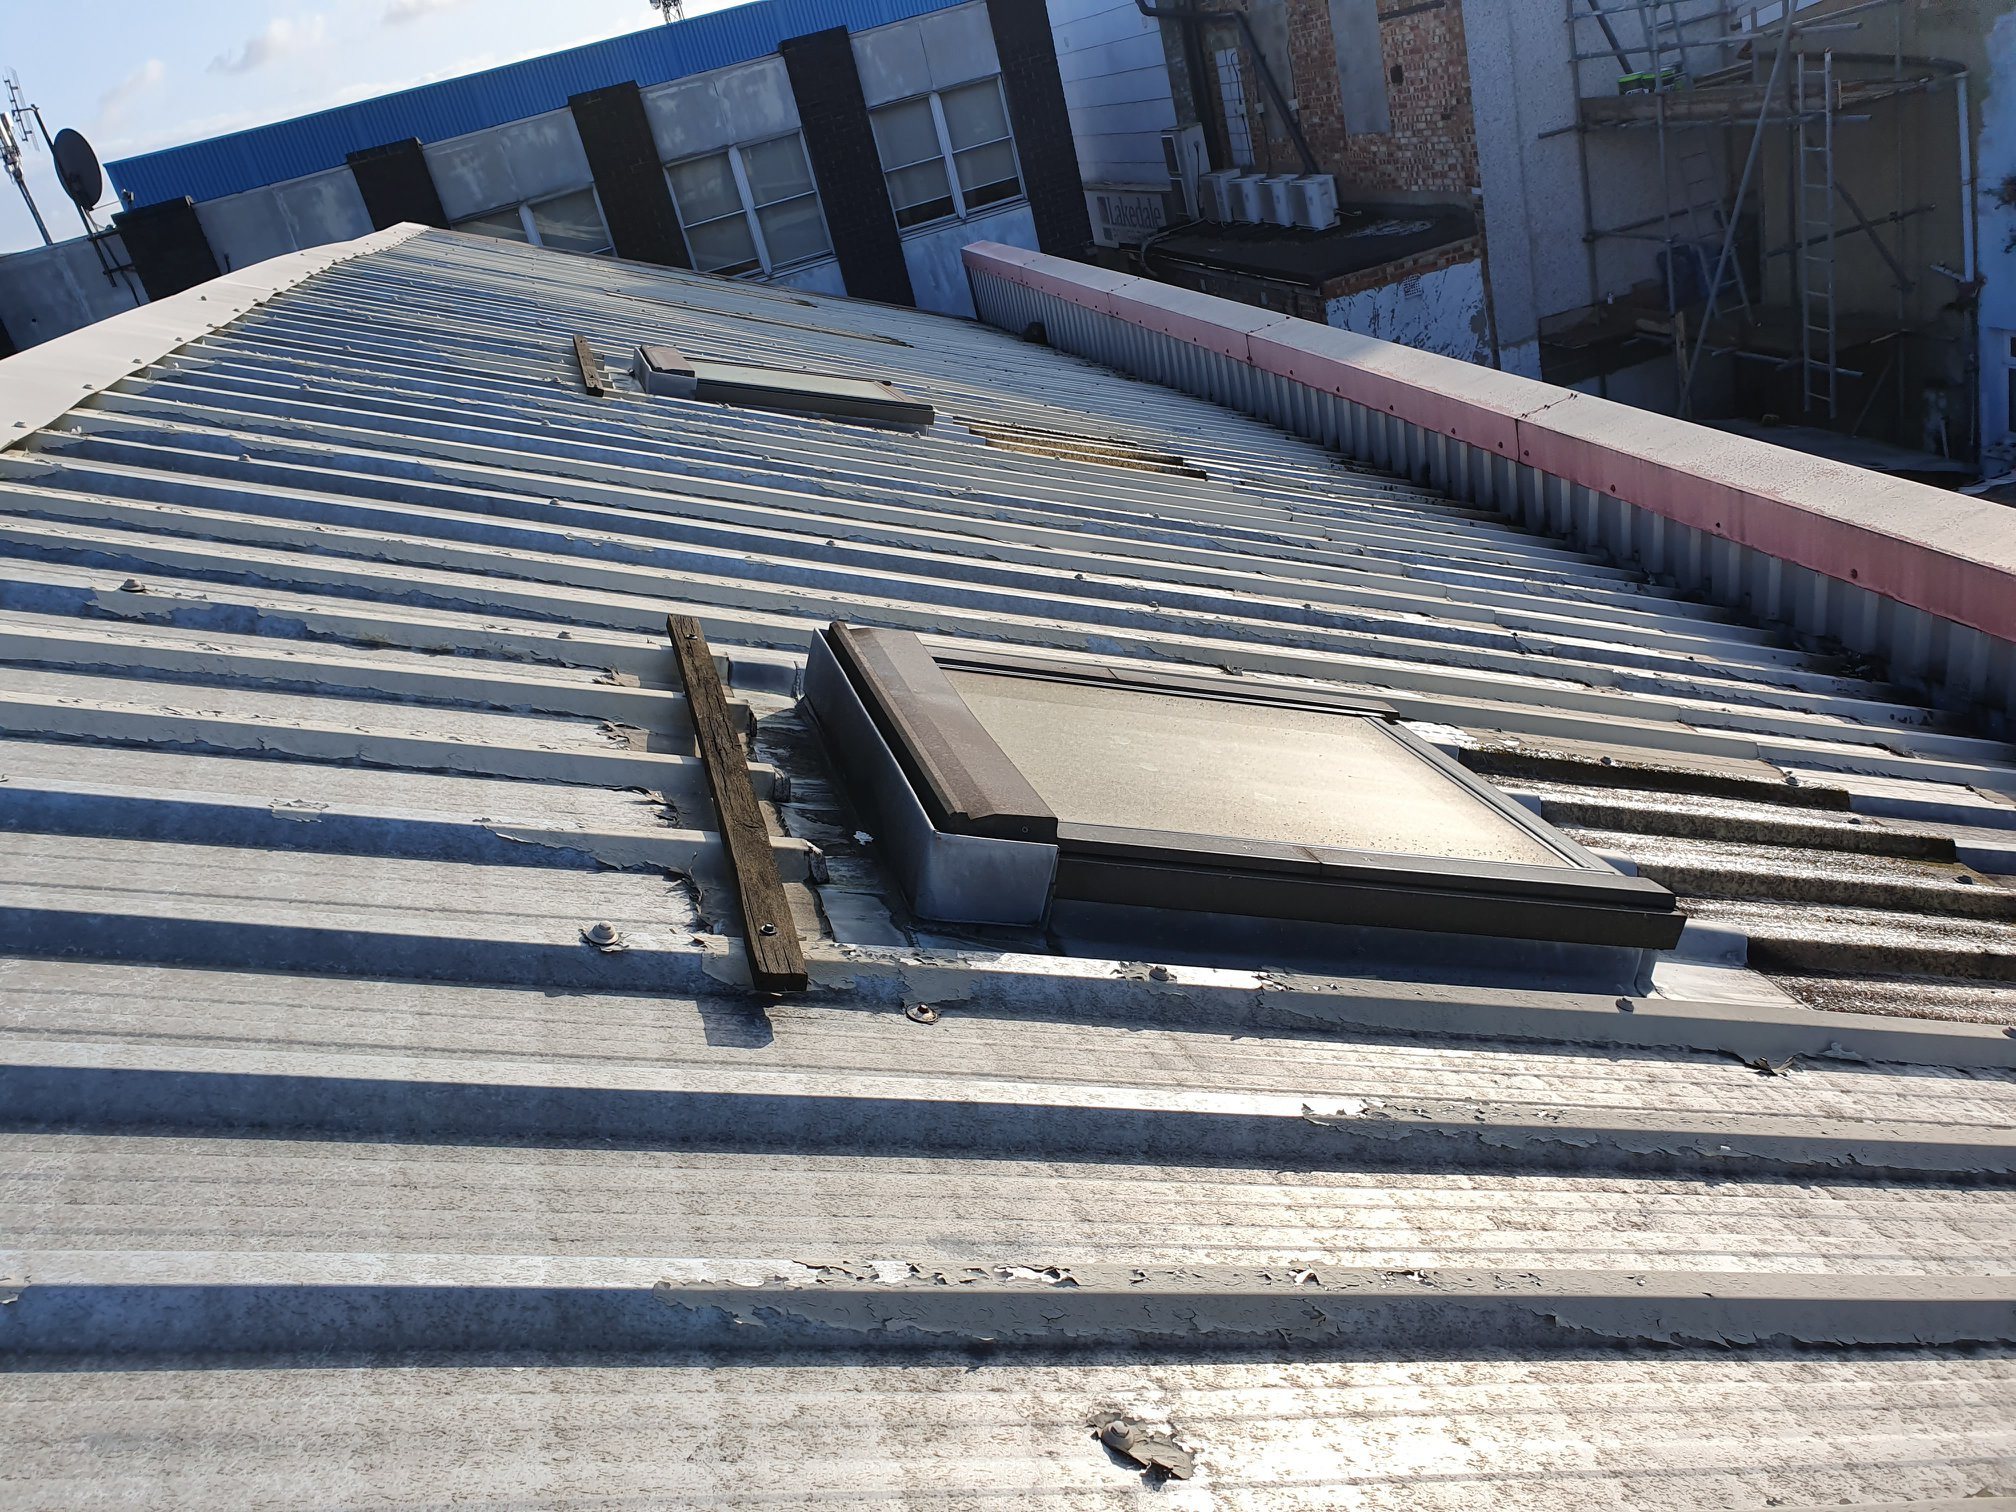 Commercial Rooflight Replacement for a Landlord in Croydon Surrey